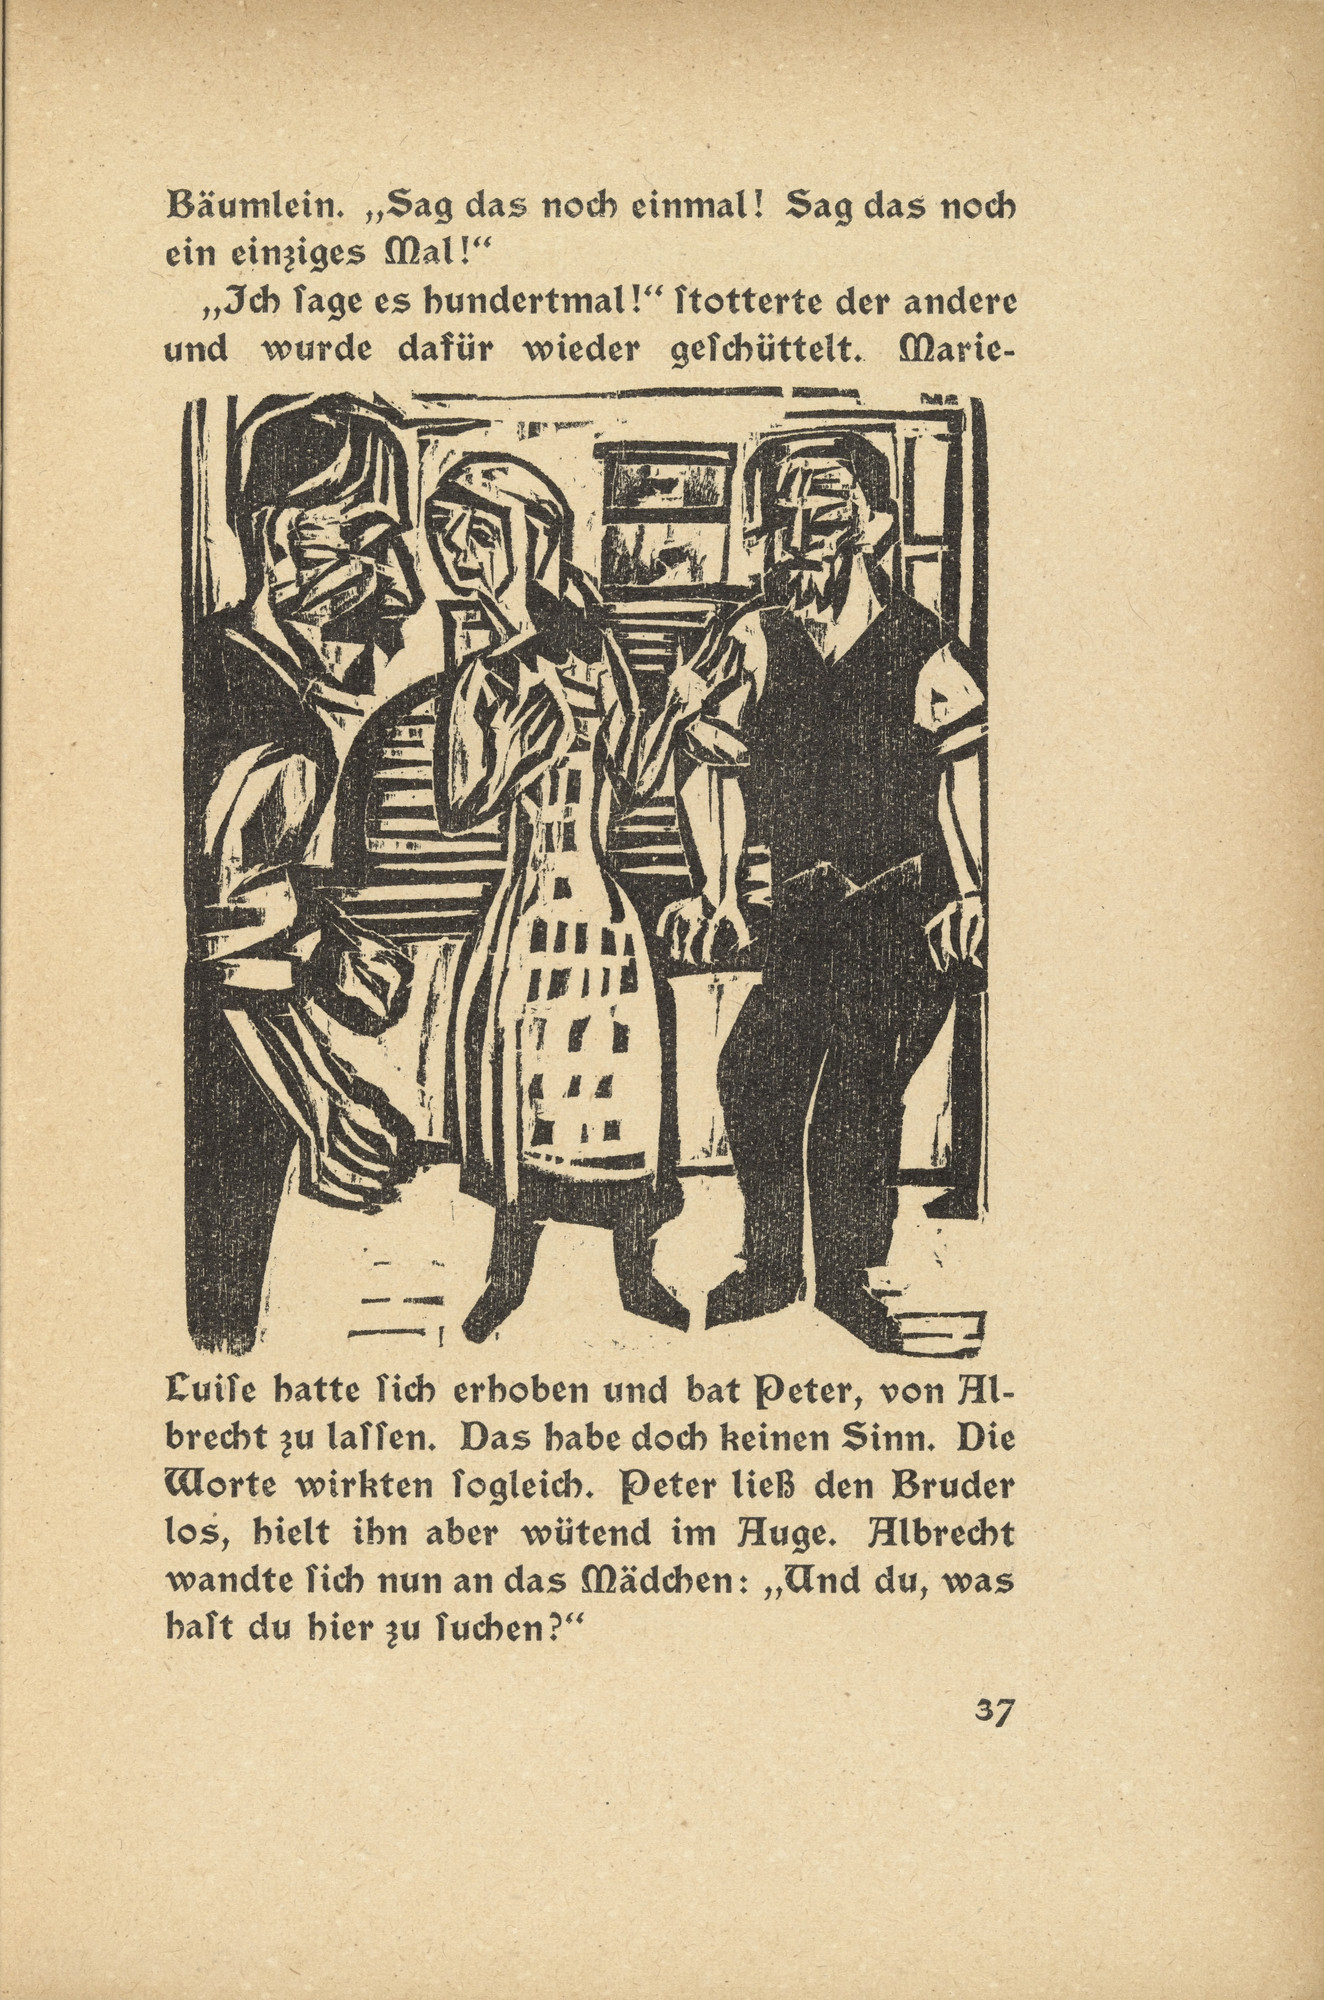 Ernst Ludwig Kirchner. Briggel: Albrecht, Peter and Marie Luise (Der Briggel: Albrecht, Peter und Marie Luise) (in-text plate, page 37) from Neben der Heerstrasse (Off the Main Road). 1923